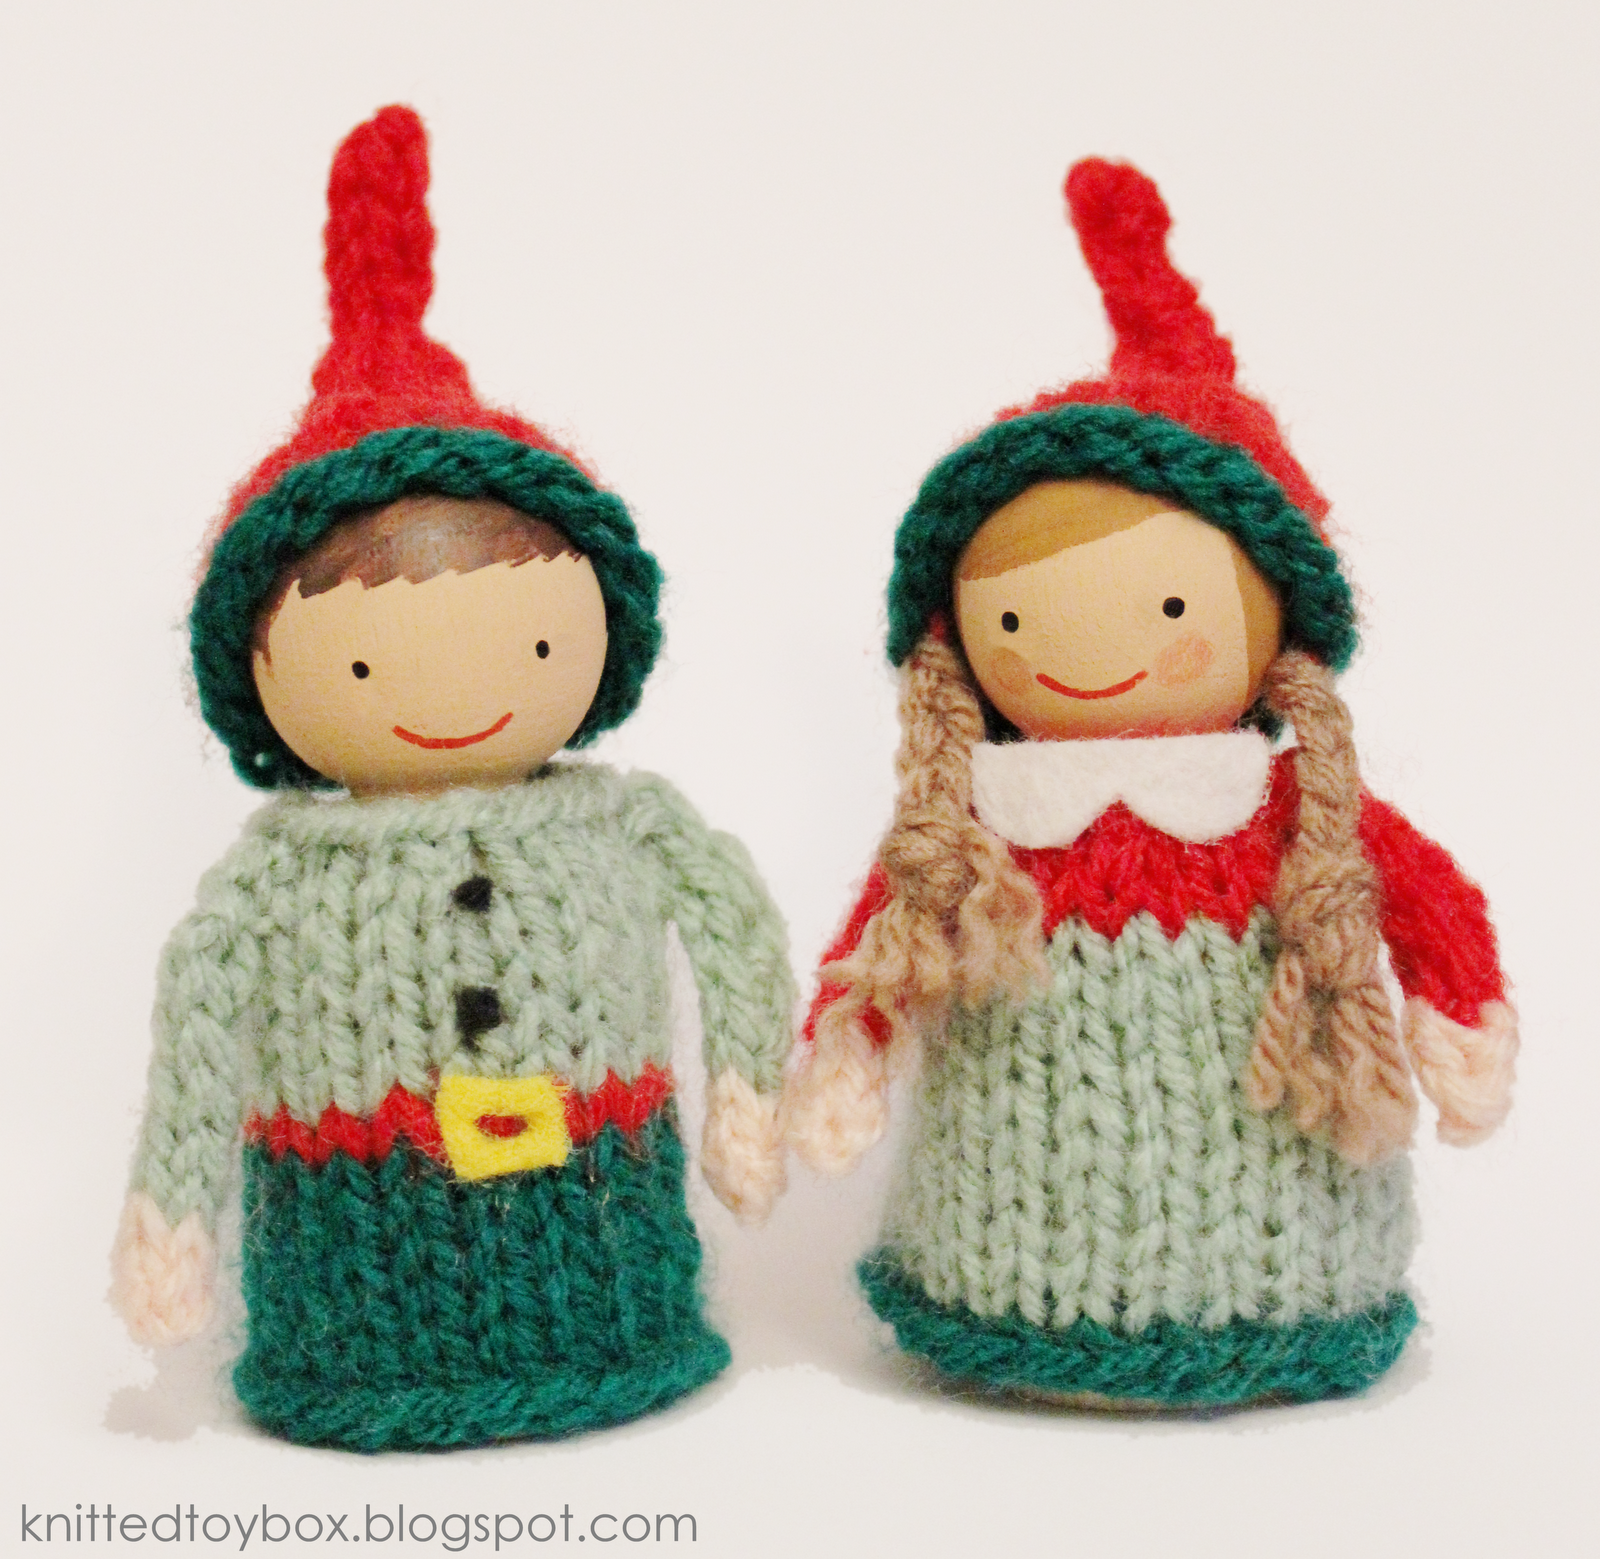 Knitted toy box christmas elf pattern knitting pinterest knitted toy box christmas elf pattern bankloansurffo Choice Image